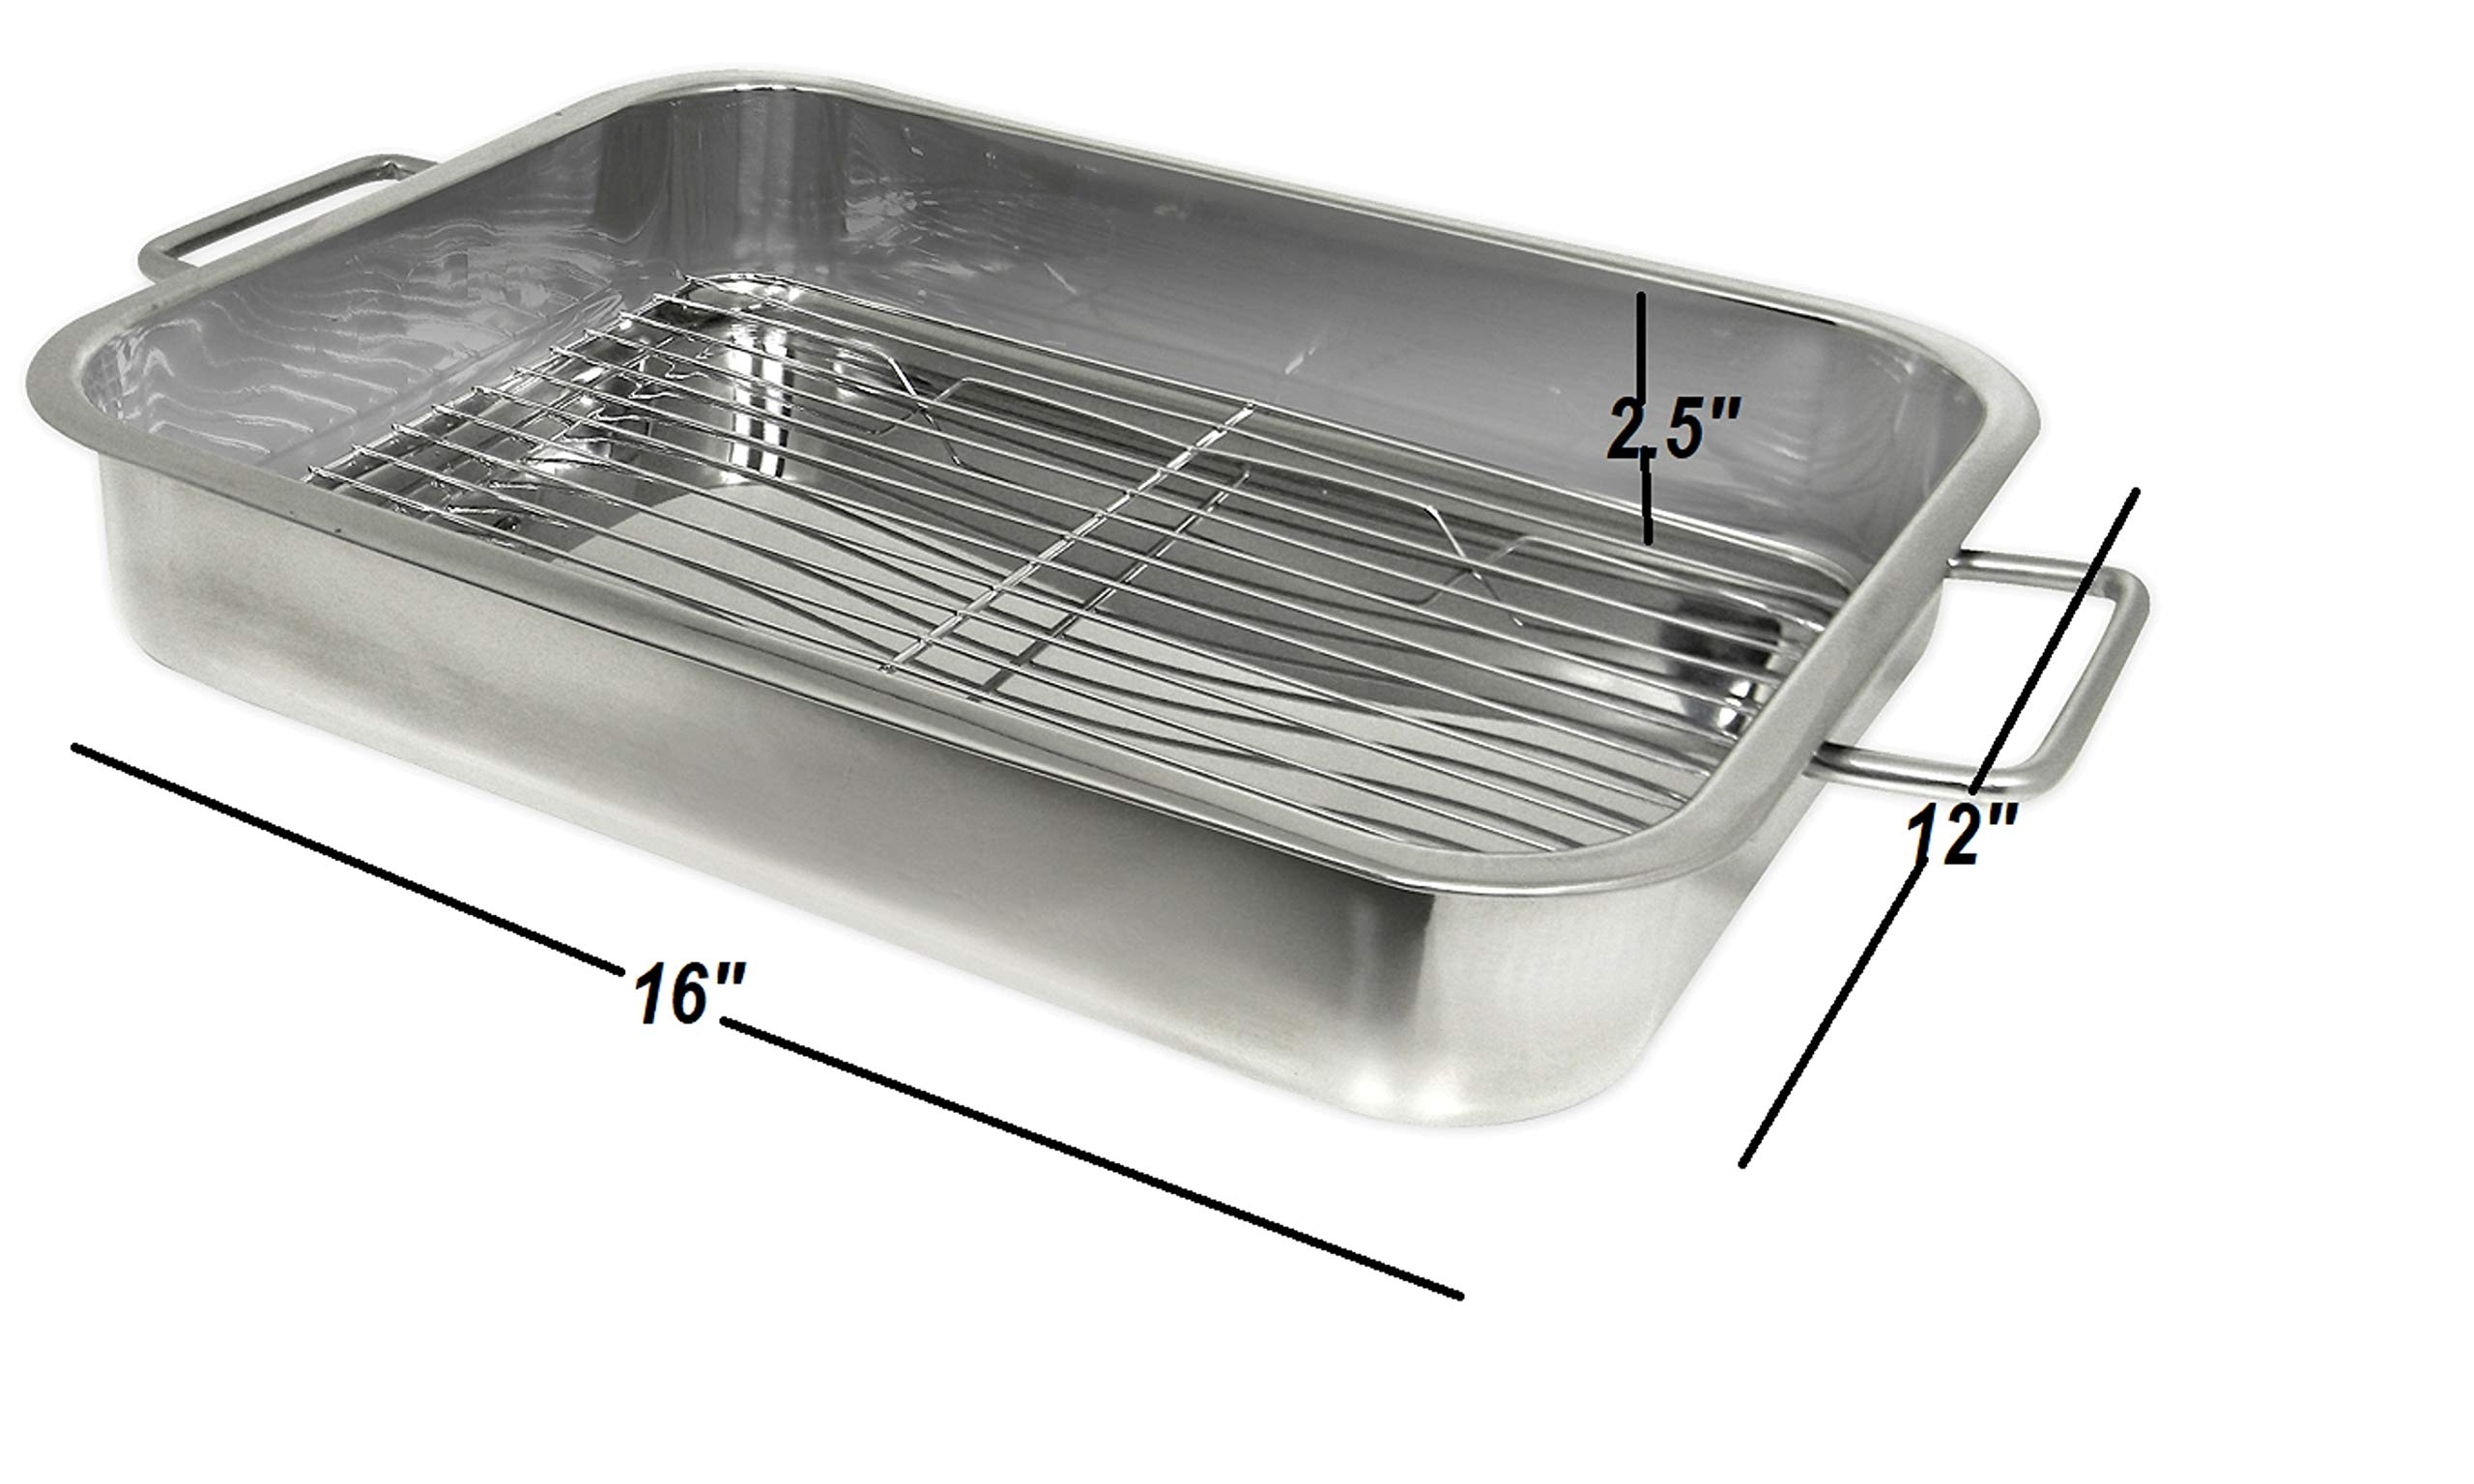 Prime Pacific Stainless Steel Roasting/Lasagna Pan by Prime Pacific